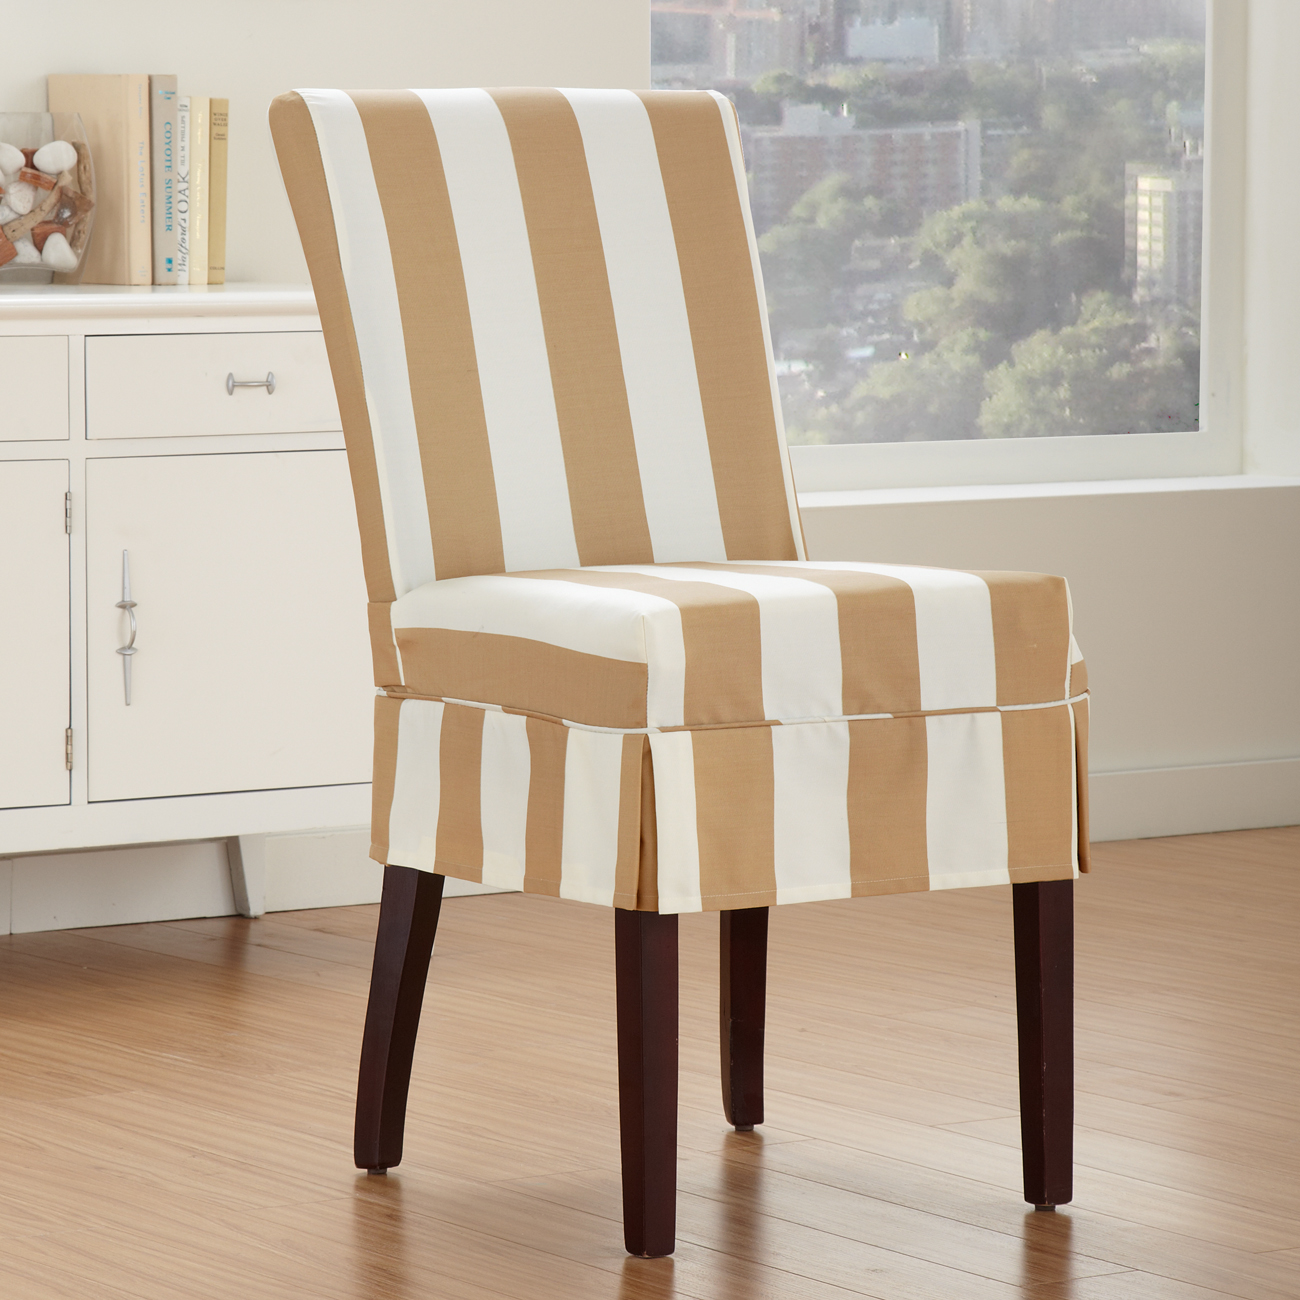 Dining chair slip cover Photo - 1